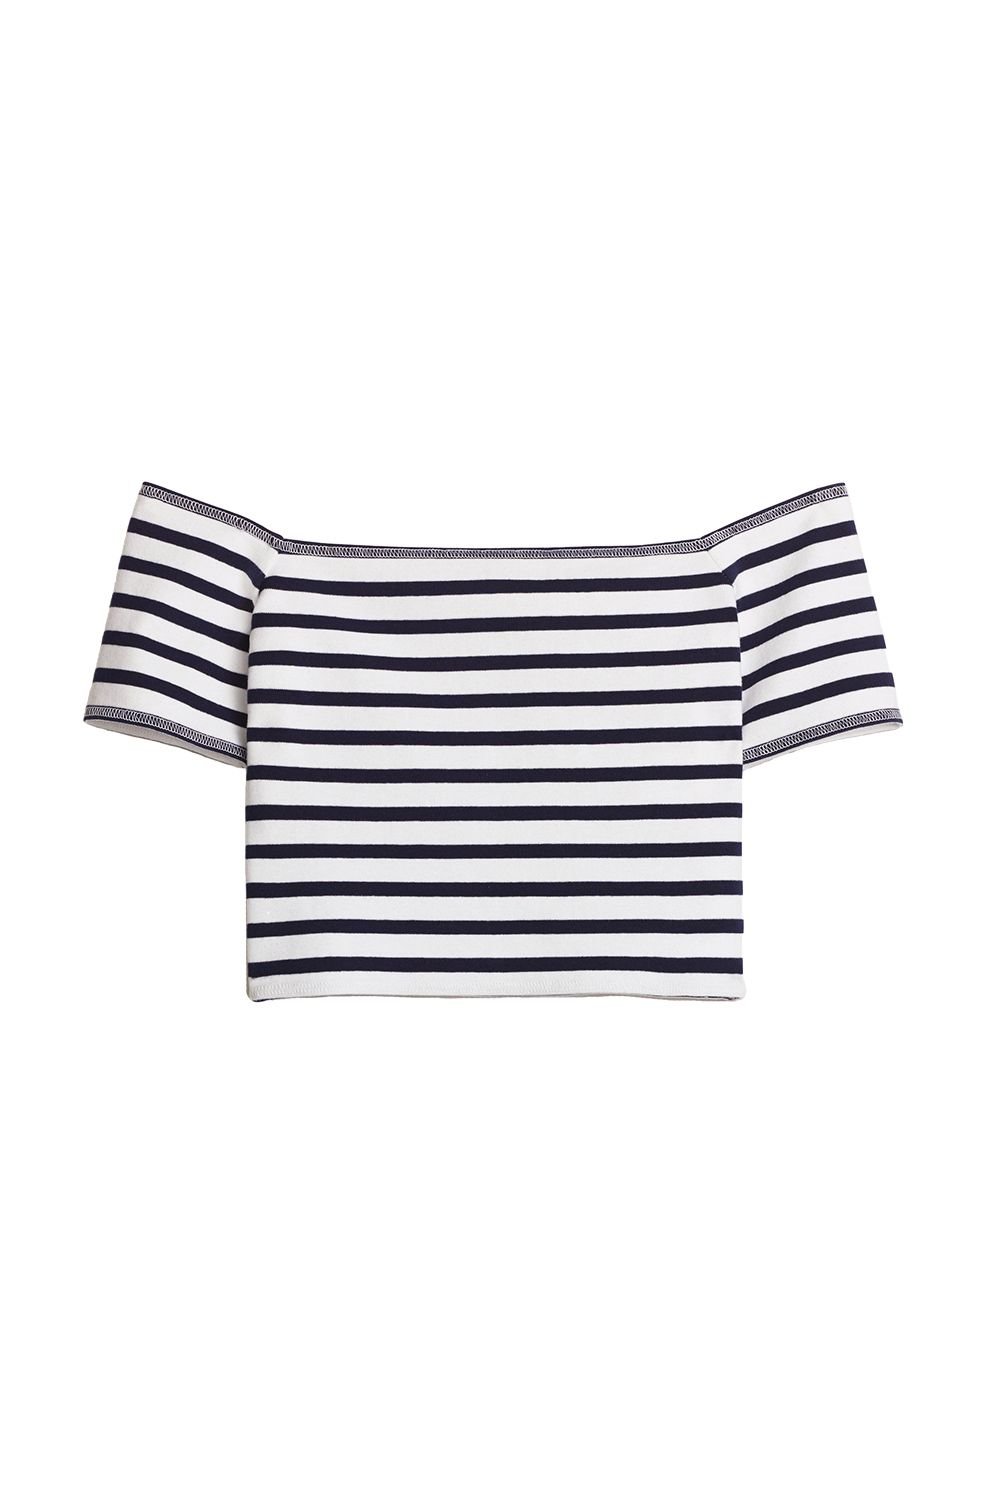 """<p>The whole shirt is stretchy, so there's no need for an elastic band just at the top to hold things up. </p><p>$23, <a href=""""http://us.aritzia.com/product/bayne-t-shirt/59400.html?dwvar_59400_color=11251"""" target=""""_blank"""">aritzia.com</a>.</p>"""